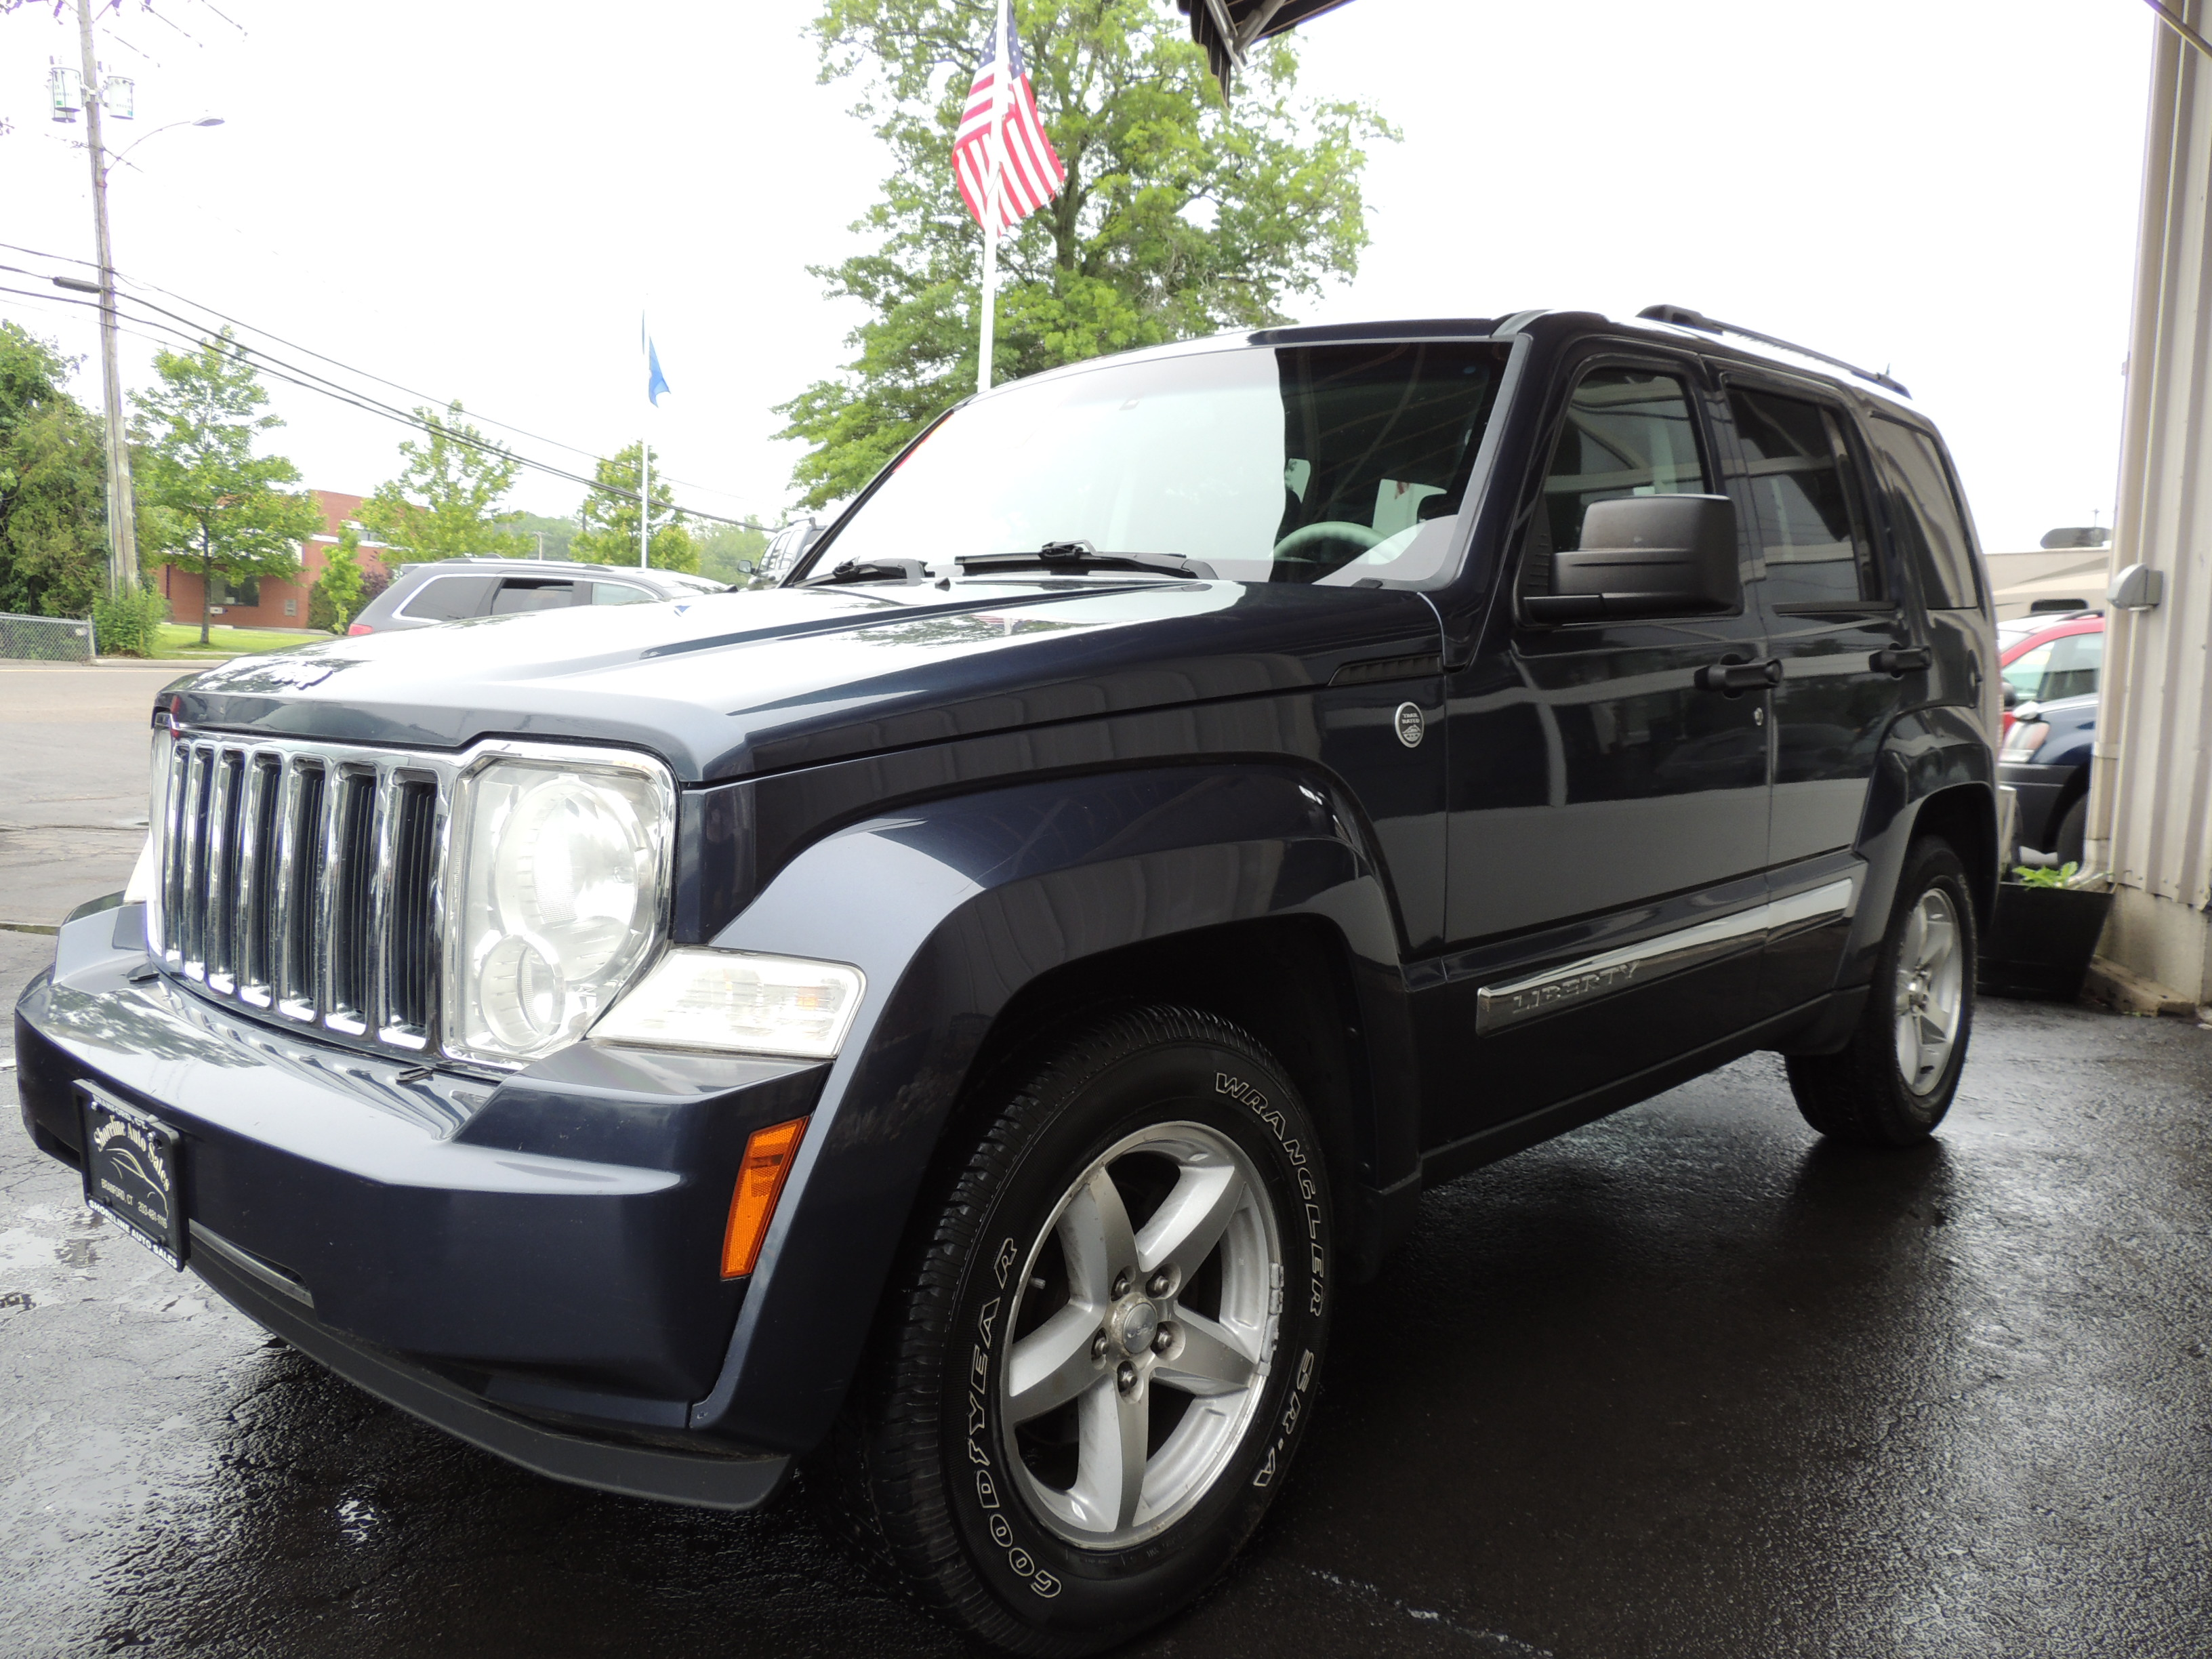 Liberty Auto Sales >> 2008 Jeep Liberty Limited Edition | Shoreline Auto Sales